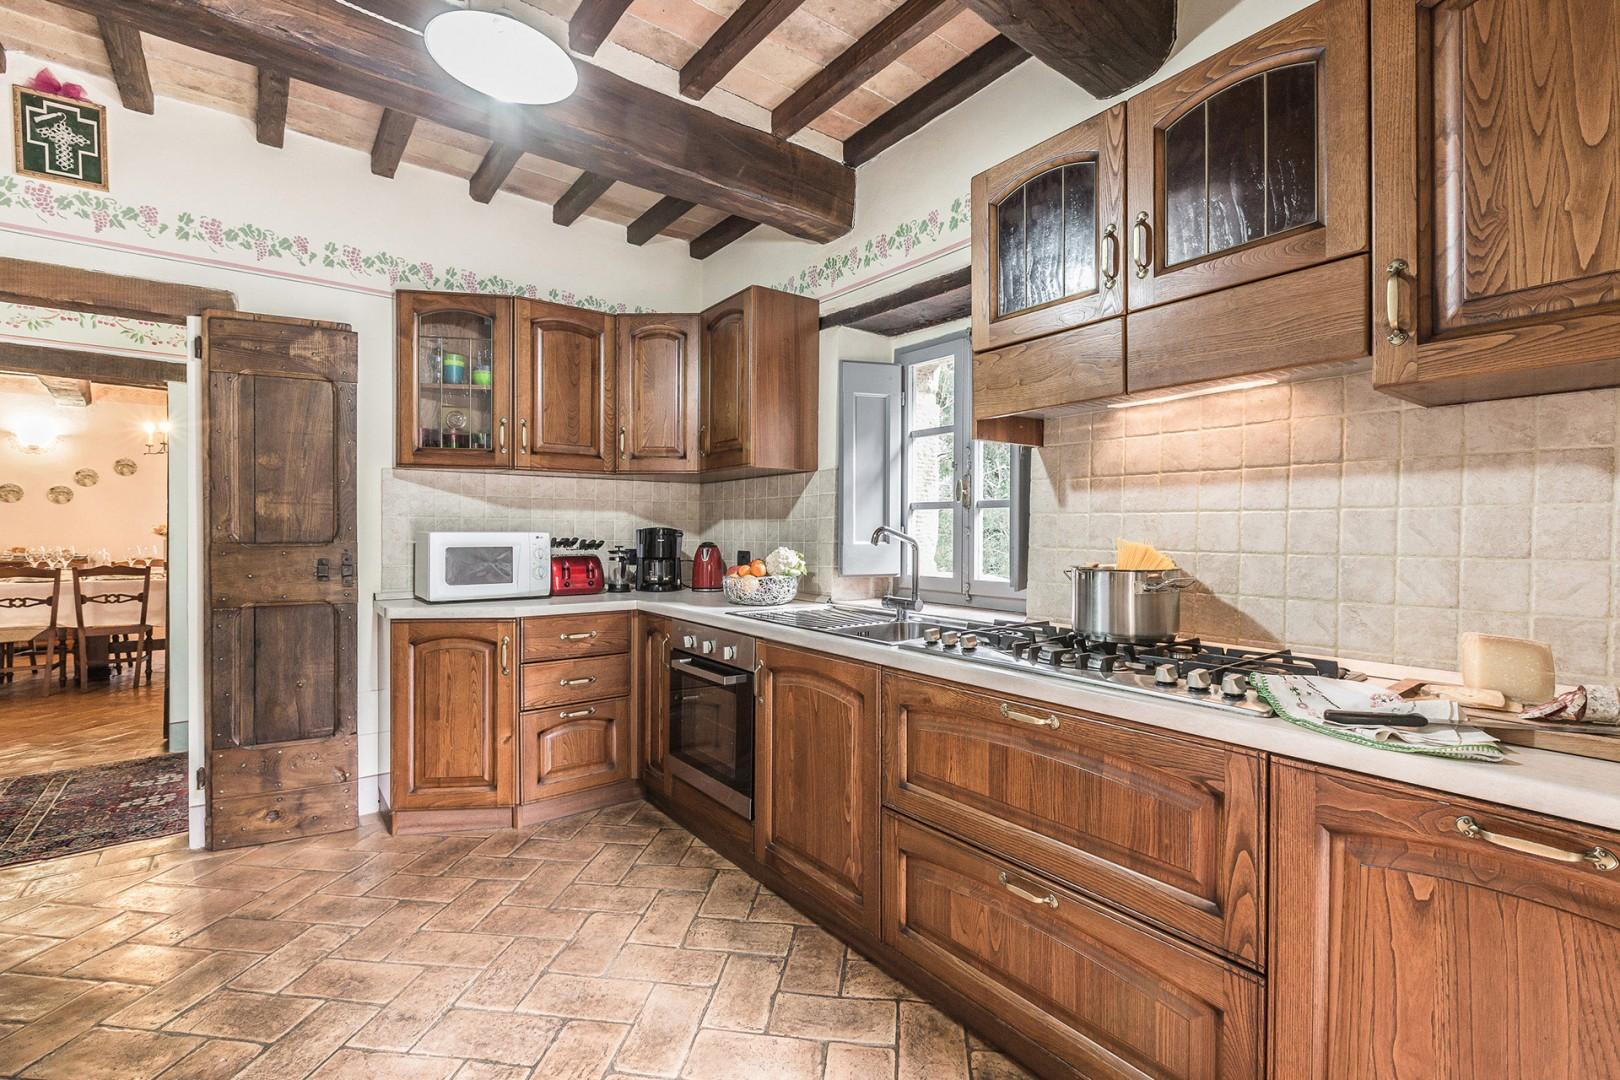 The kitchen is very well equipped.